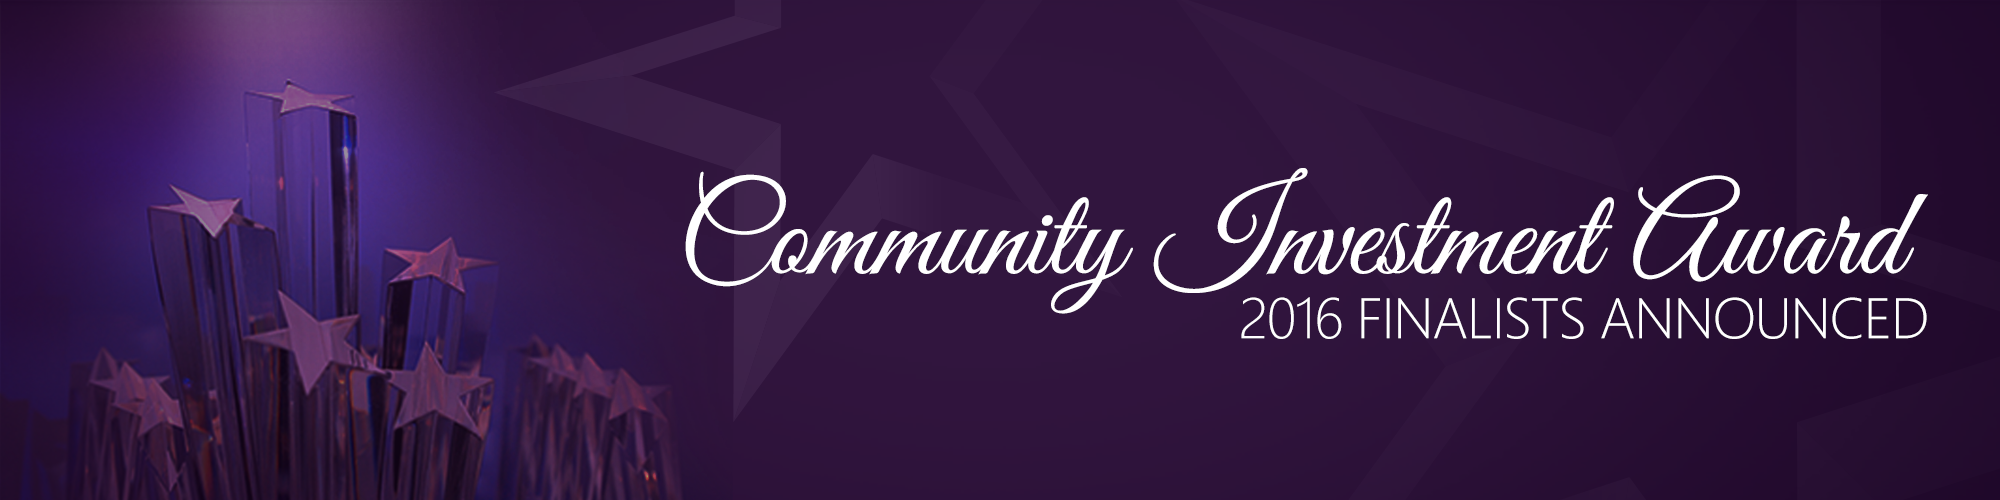 2016 Community Investment Finalists